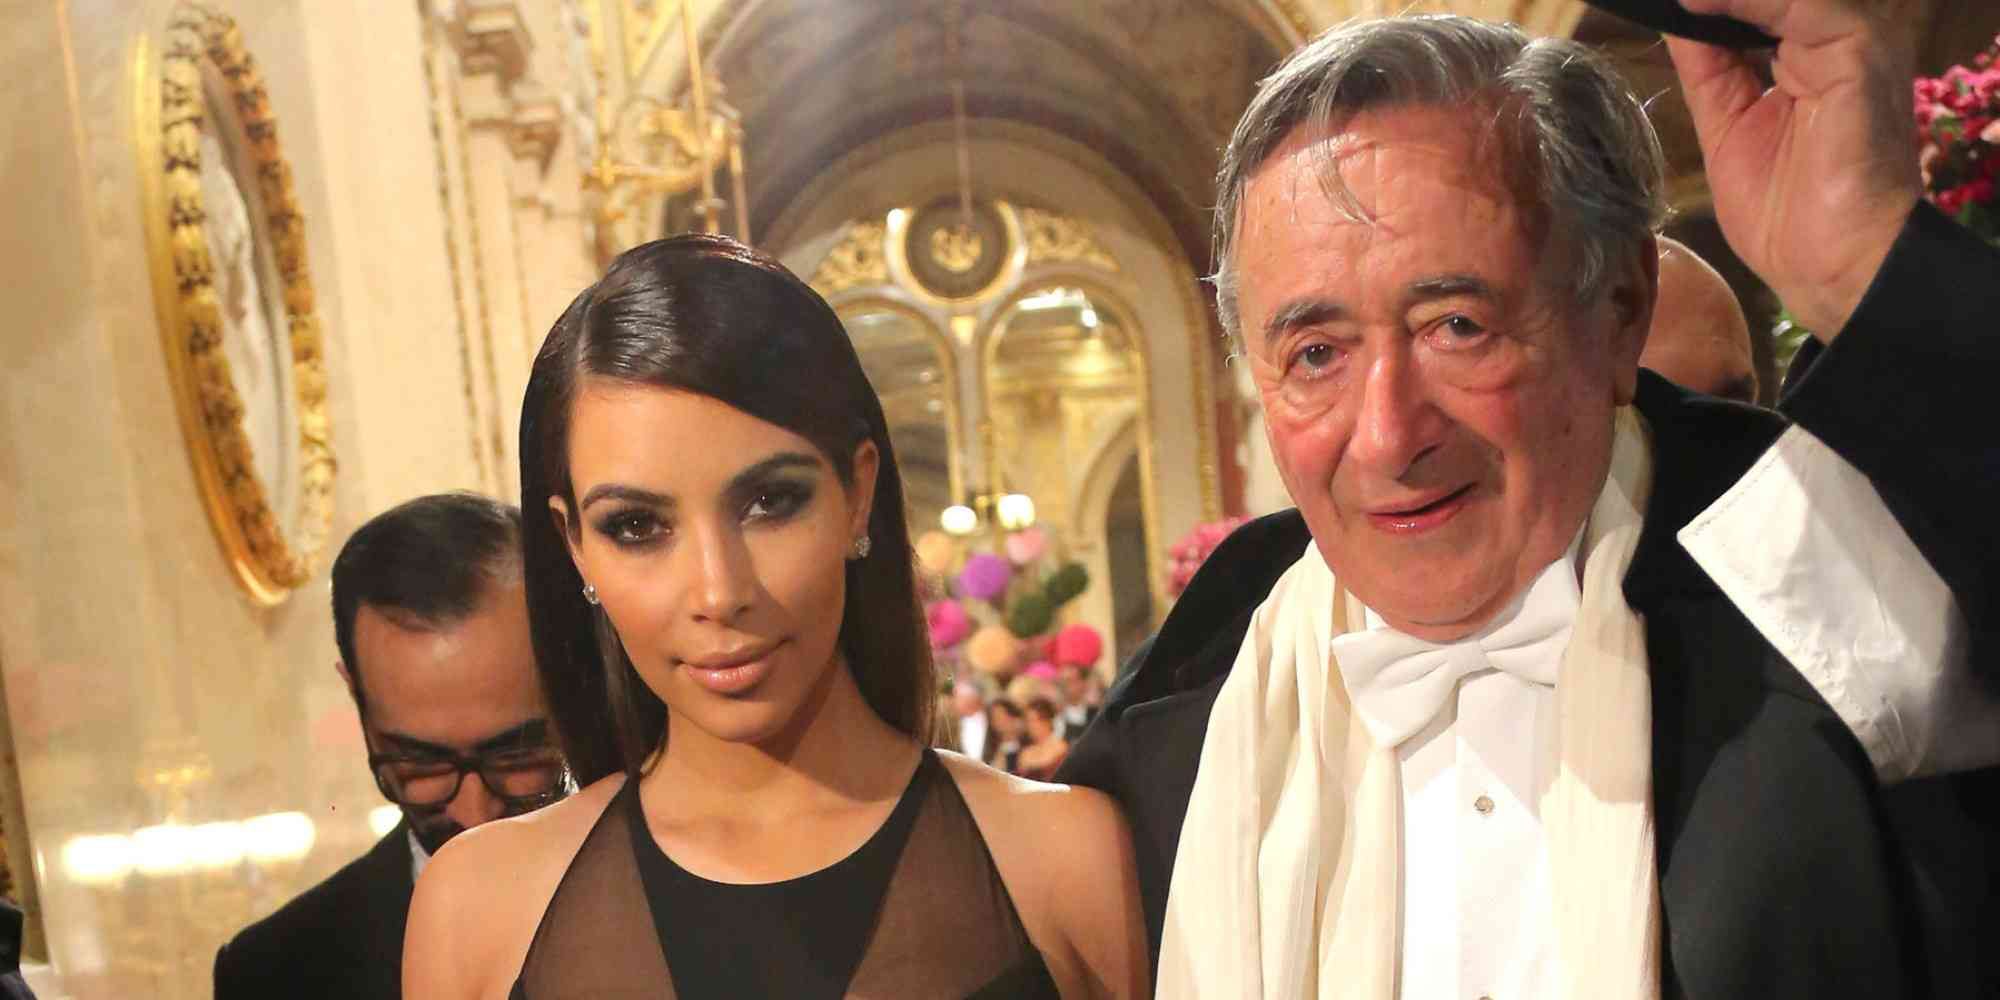 Kim Kardashian goes to the Vienna Ball with her mother Kris Jenner